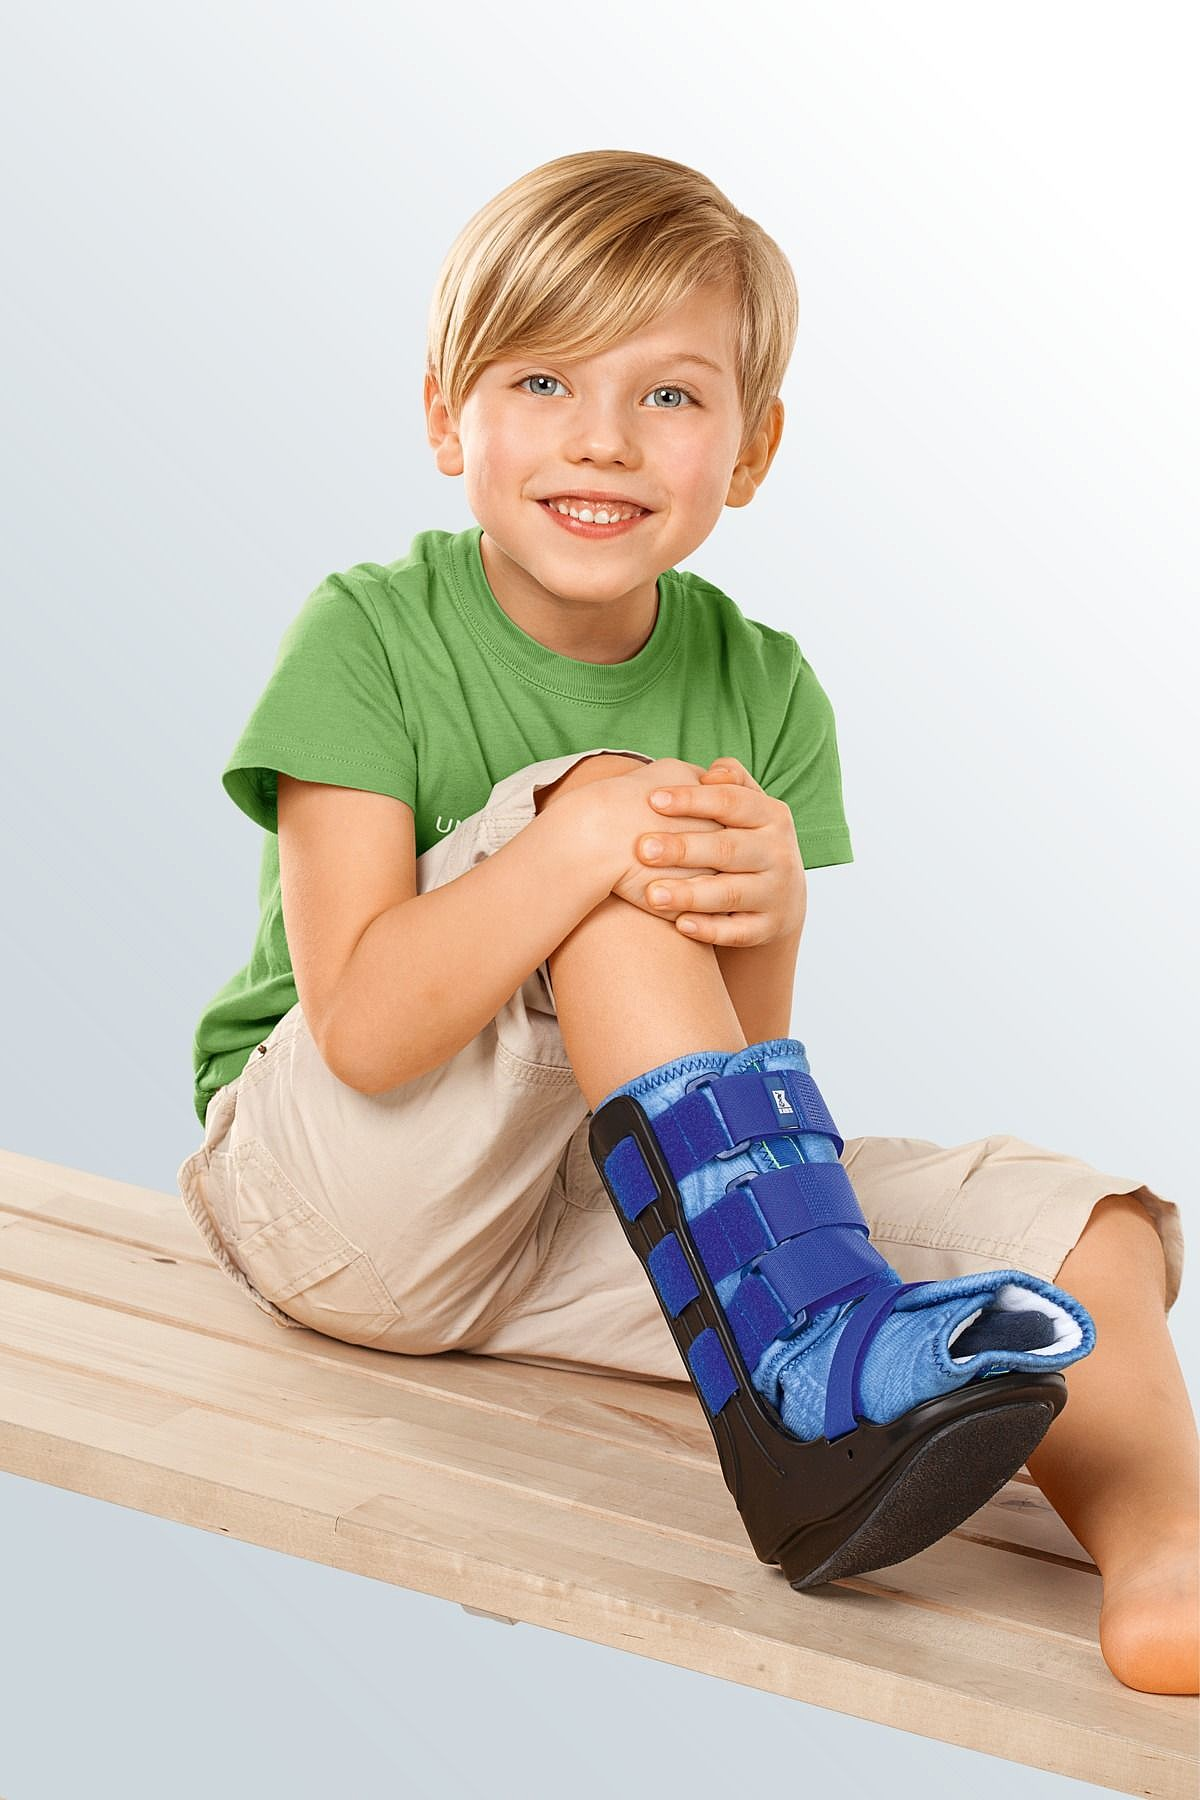 Orthopaedic products especially for children